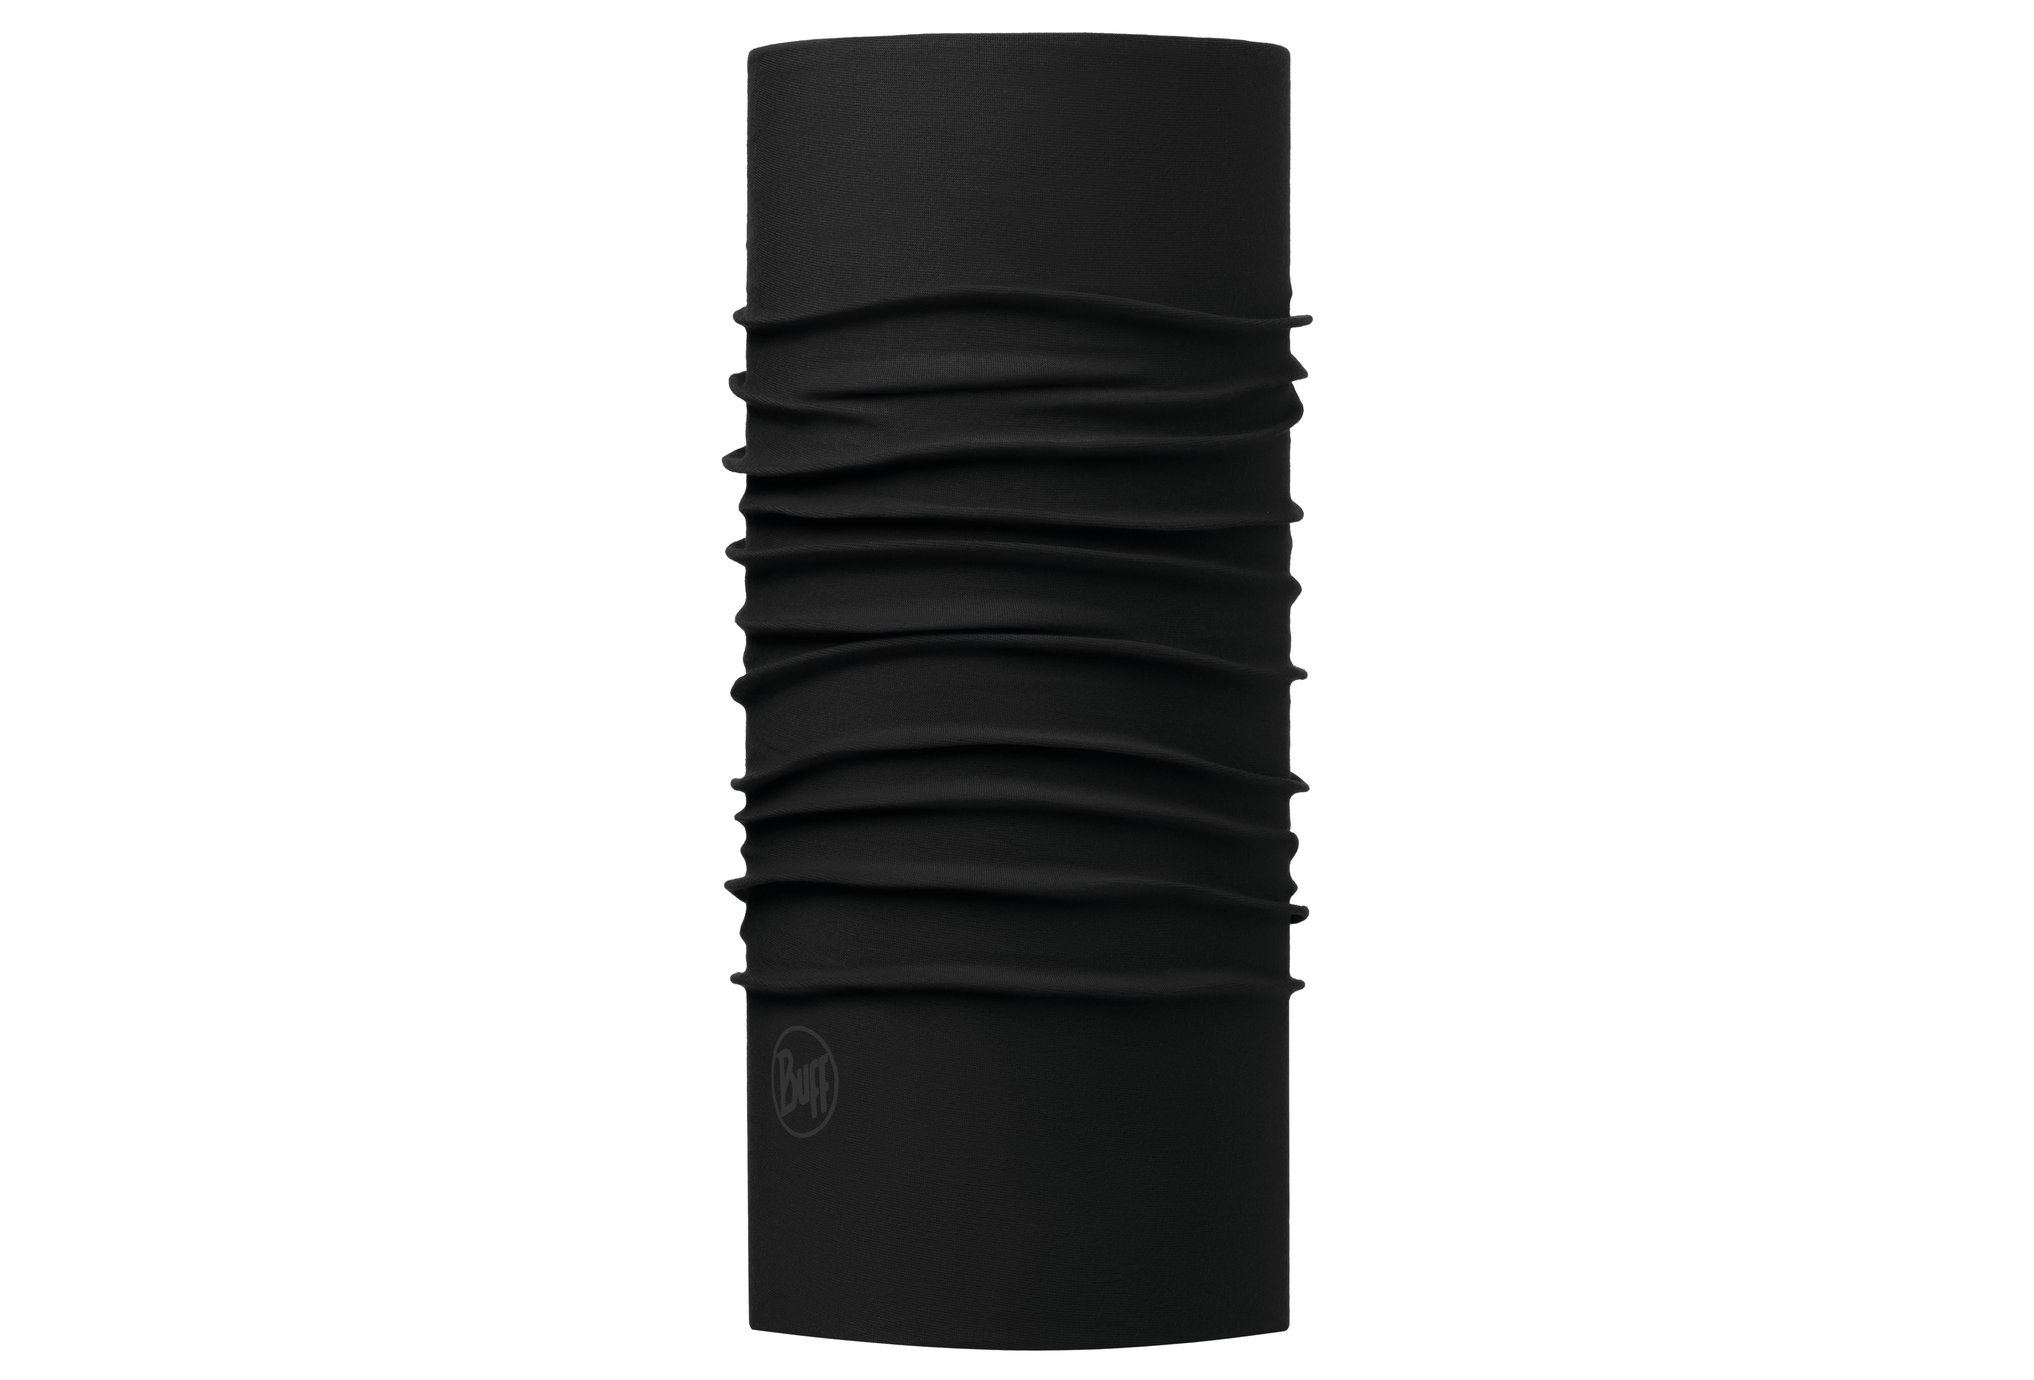 Buff Original Solid Black Tours de cou